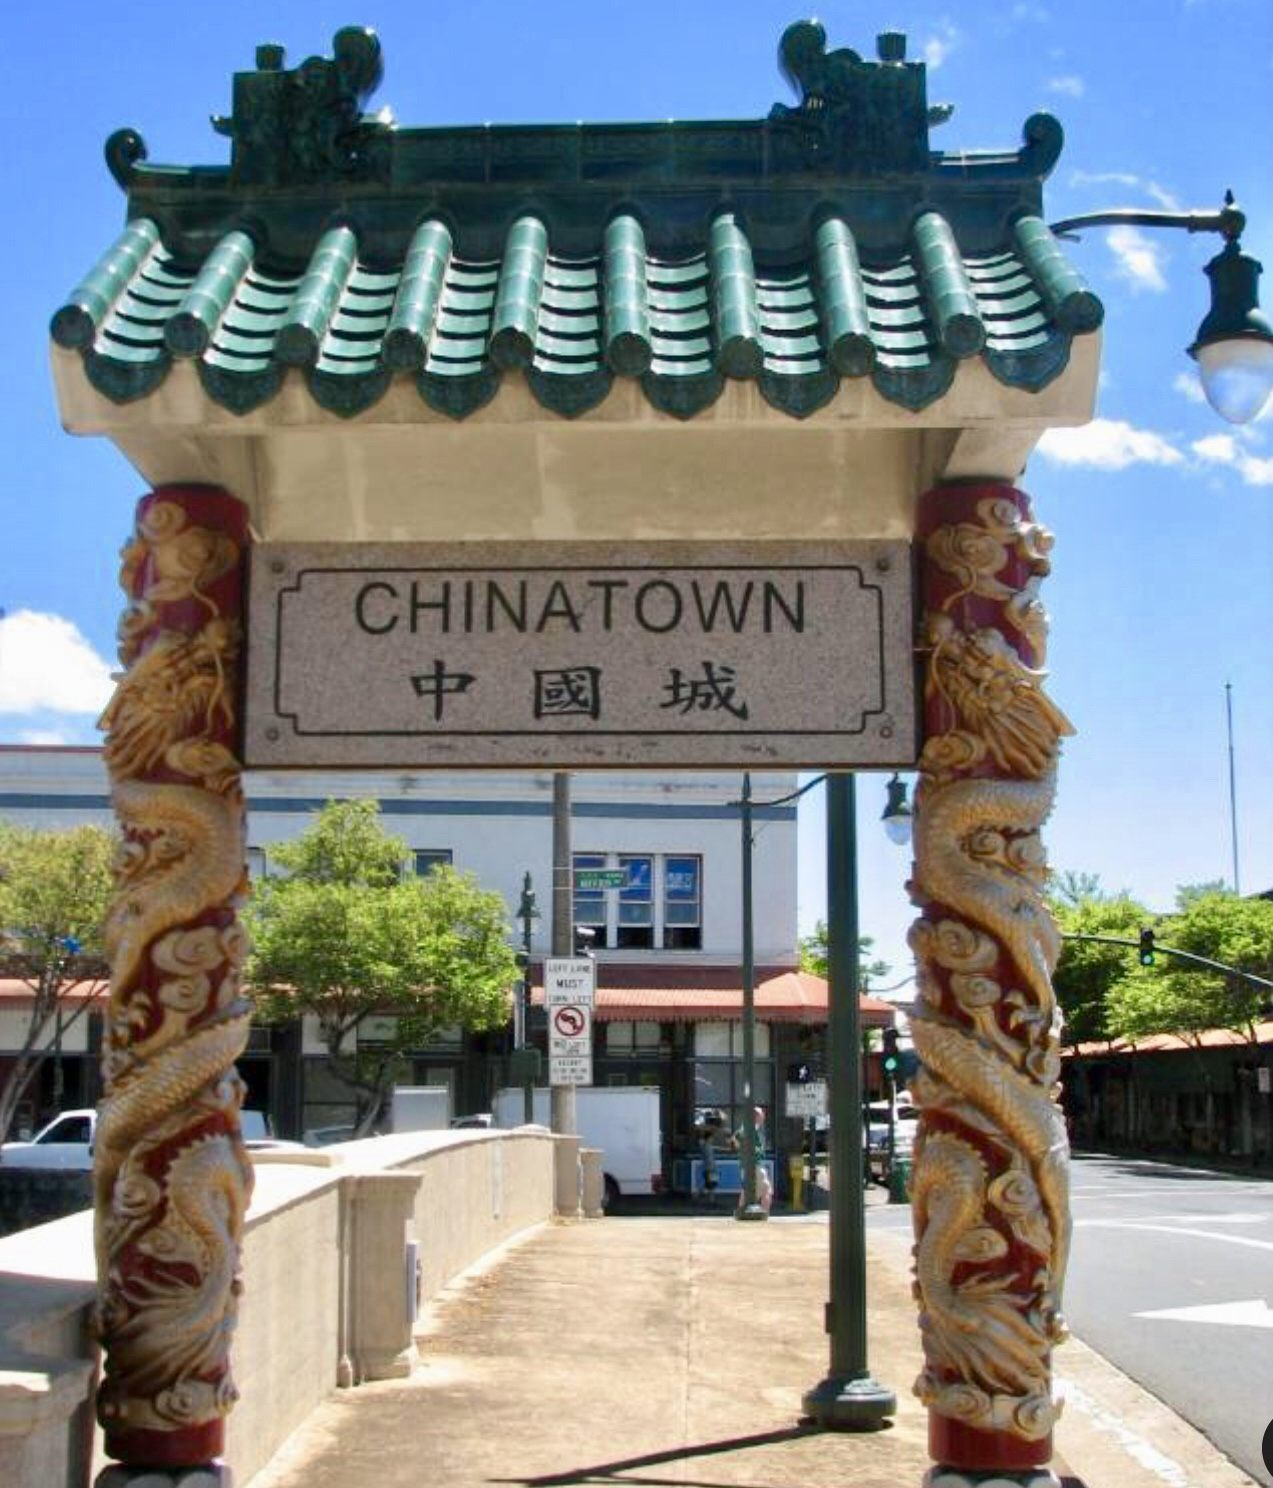 honolulu chinatown Read the best chinese restaurant in honolulu chinatown discussion from the chowhound restaurants, hawaii food community join the discussion today.